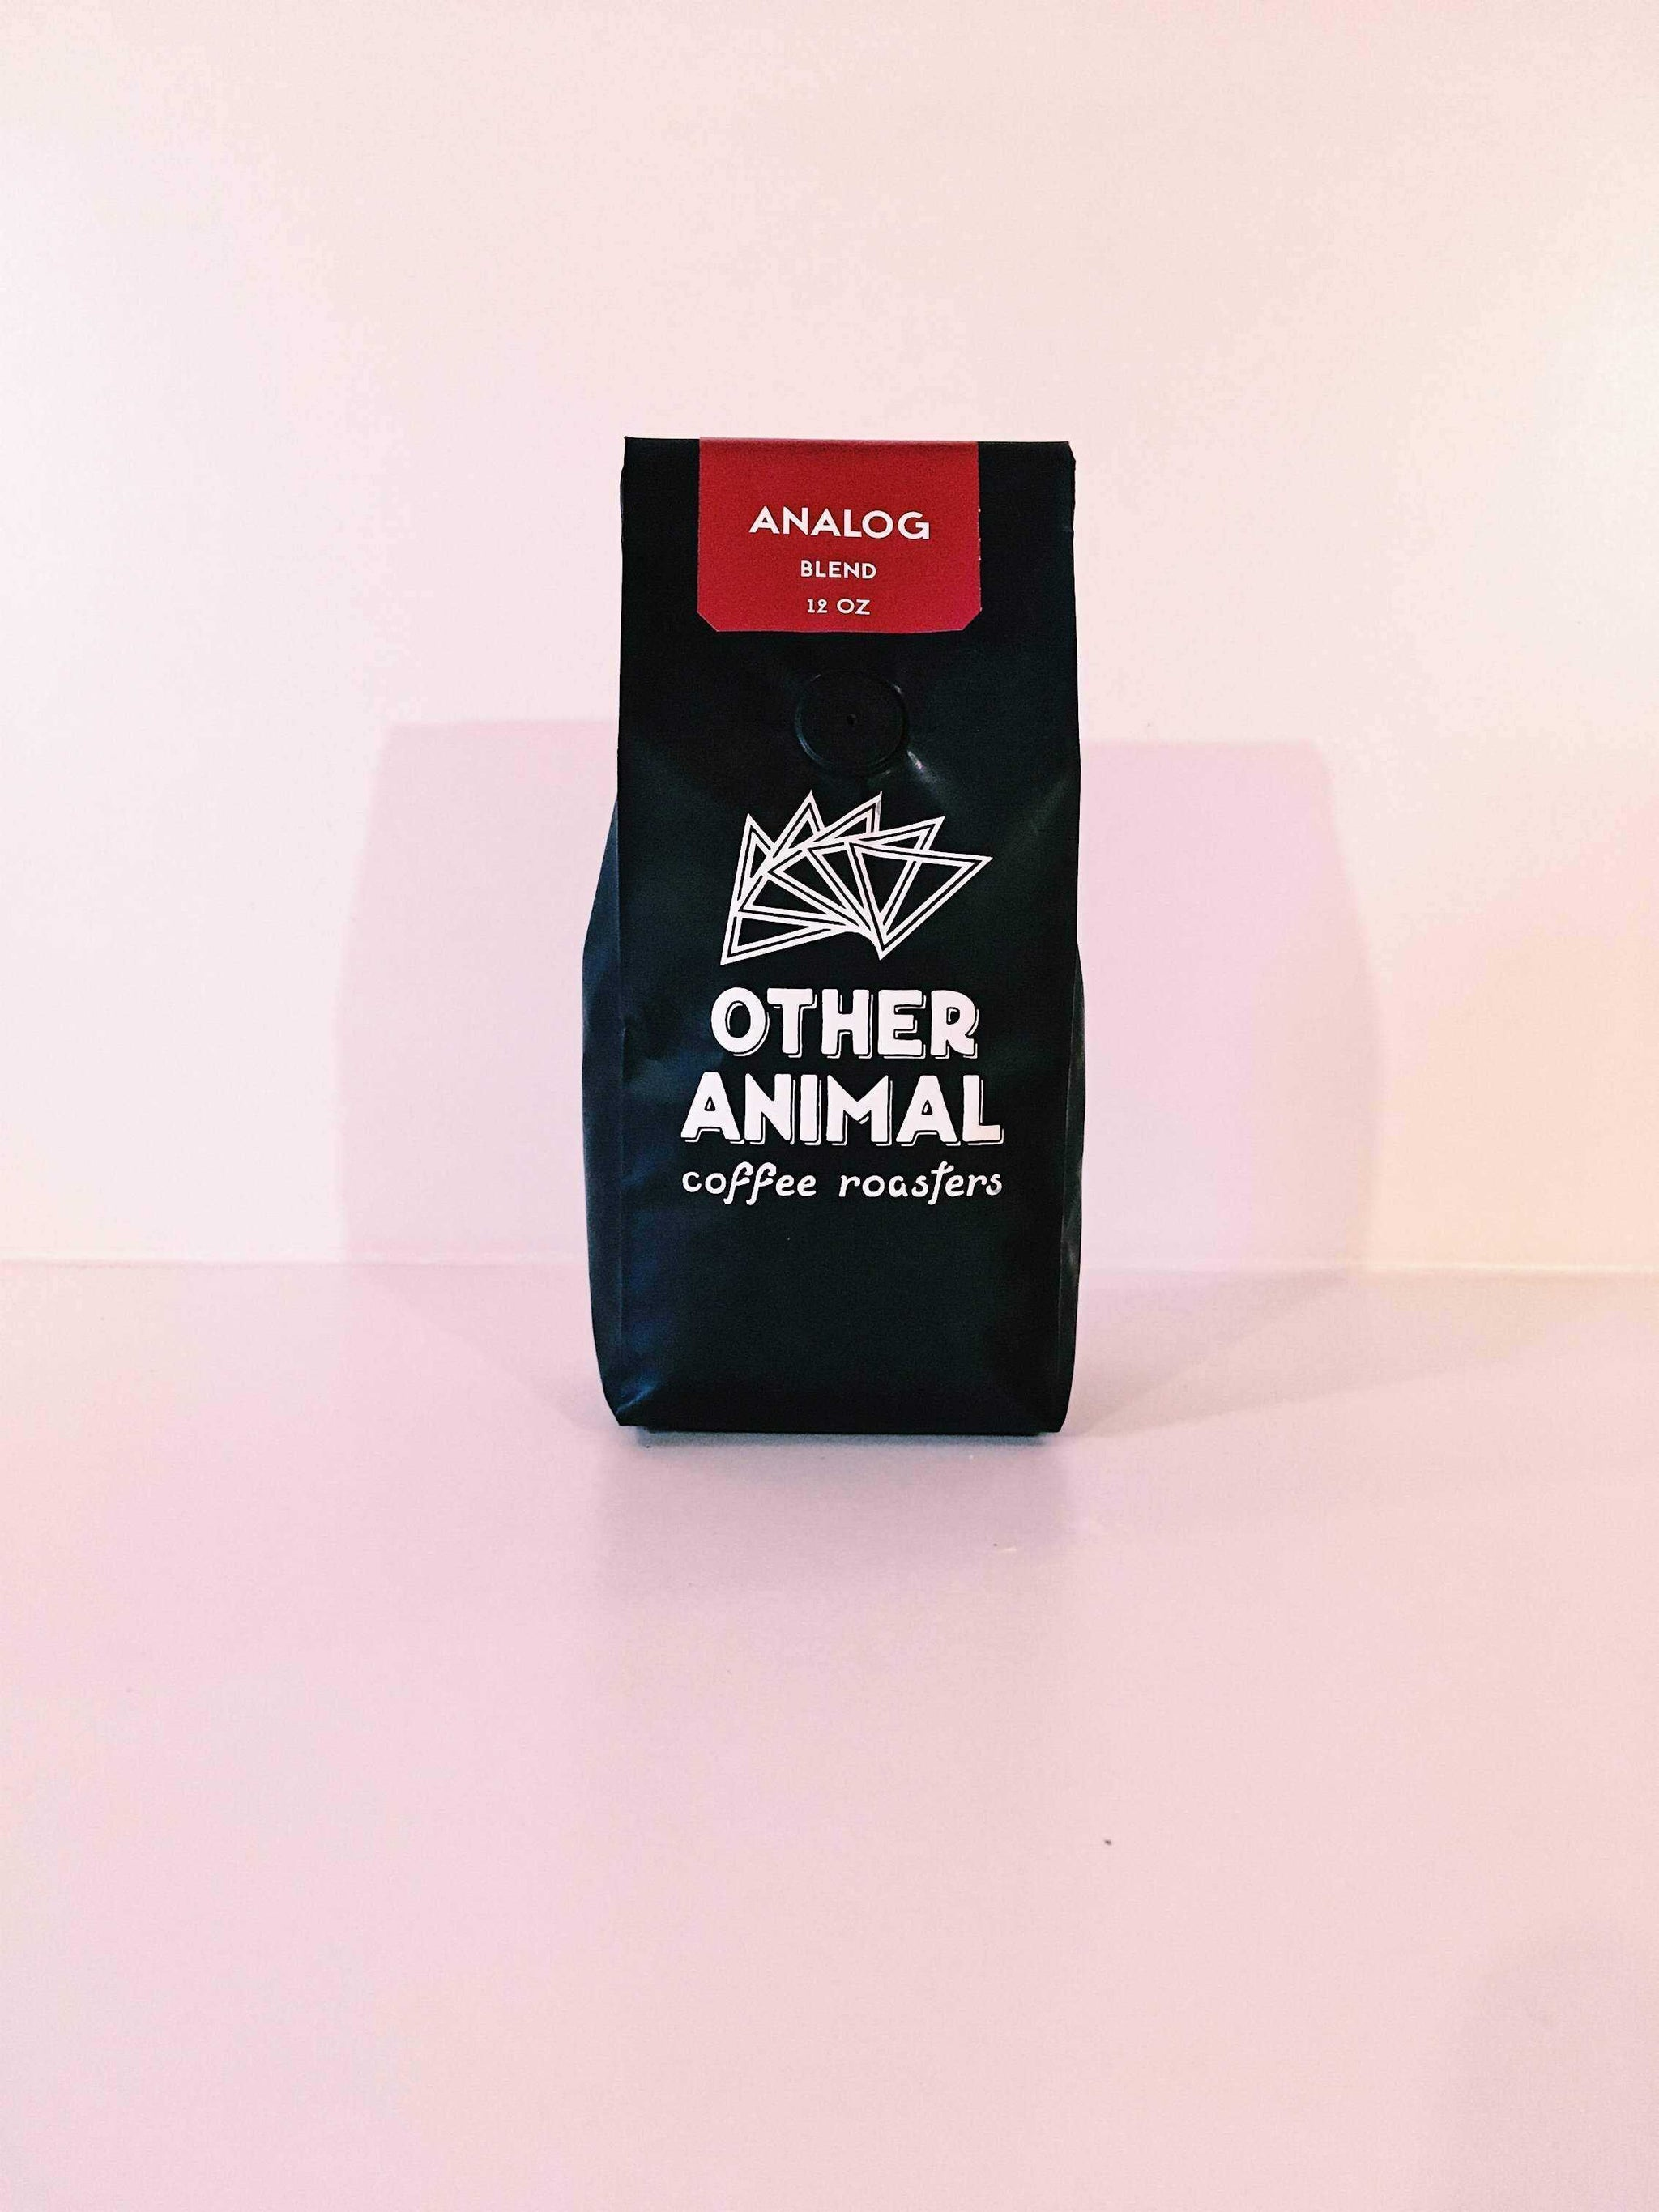 Analog | Other Animal Coffee Roasters | Dript Coffee Co.